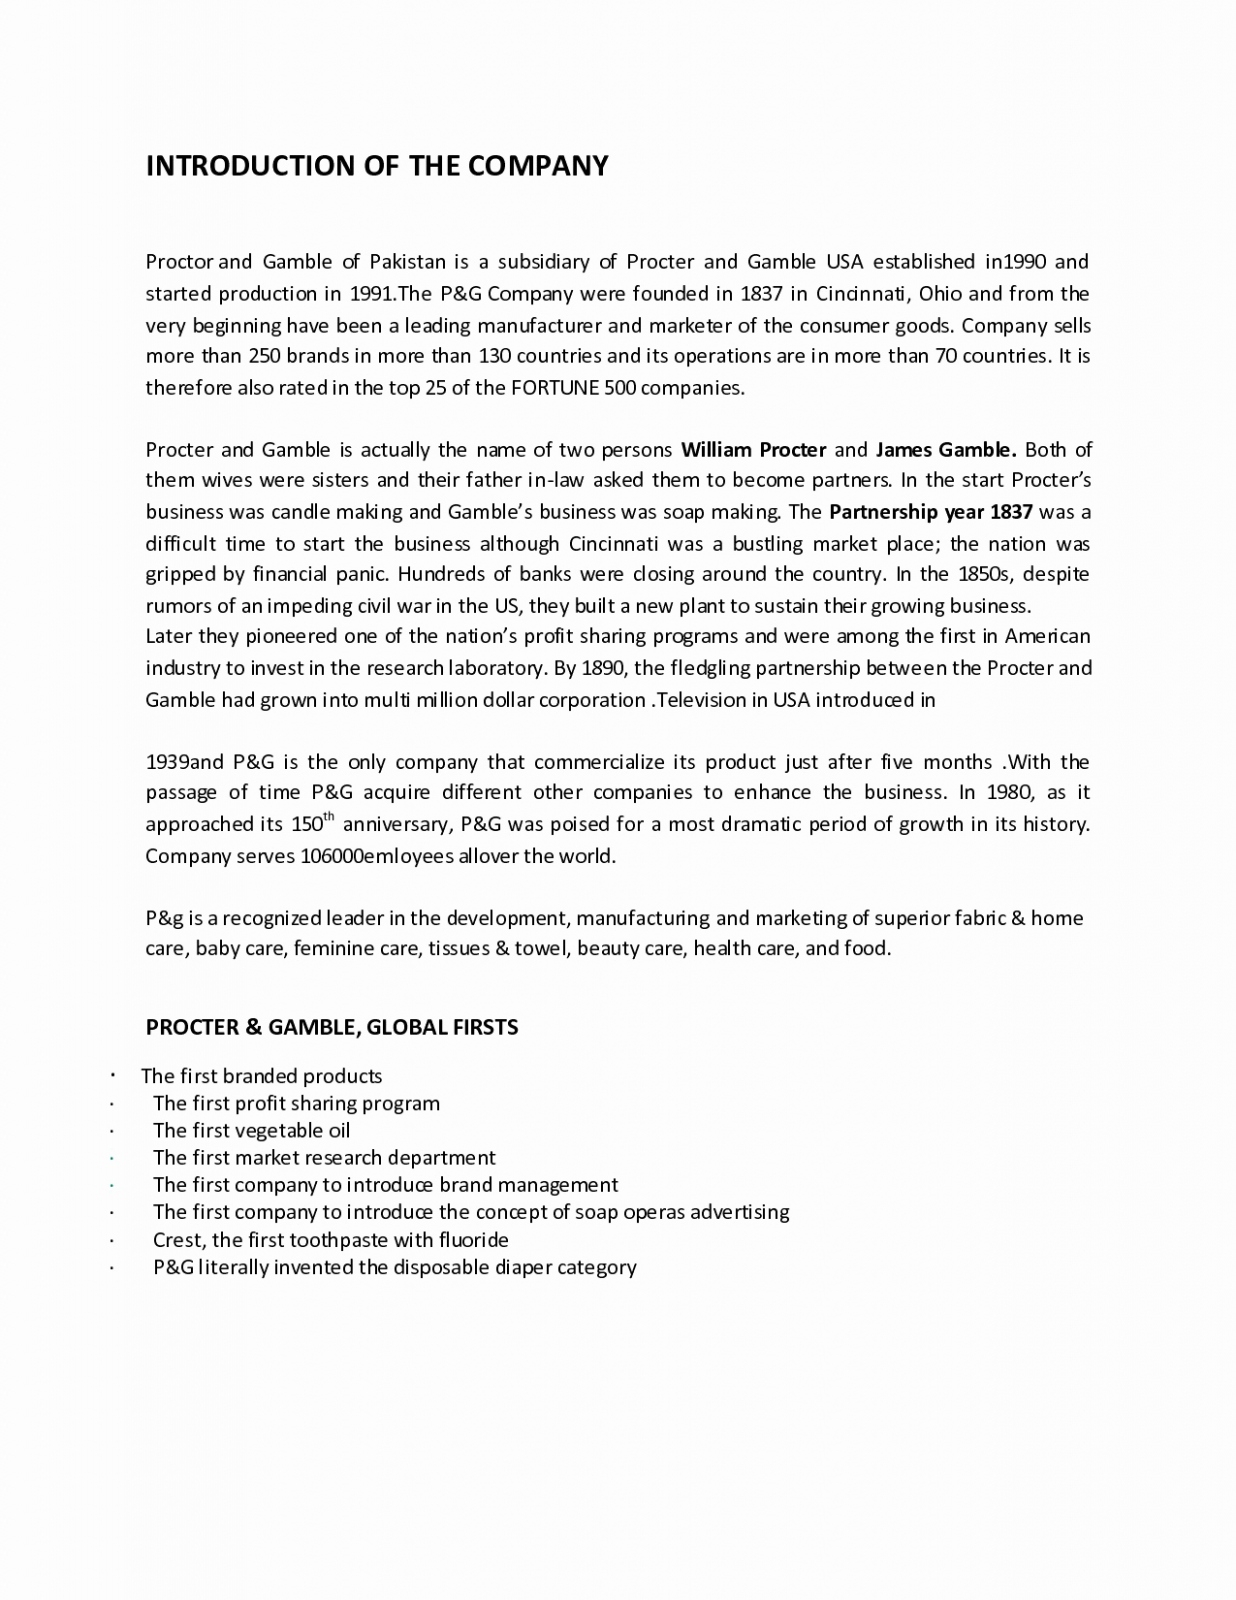 Email Cover Letter Template - Sample Email to Hiring Manager with Resume — Resumes Project